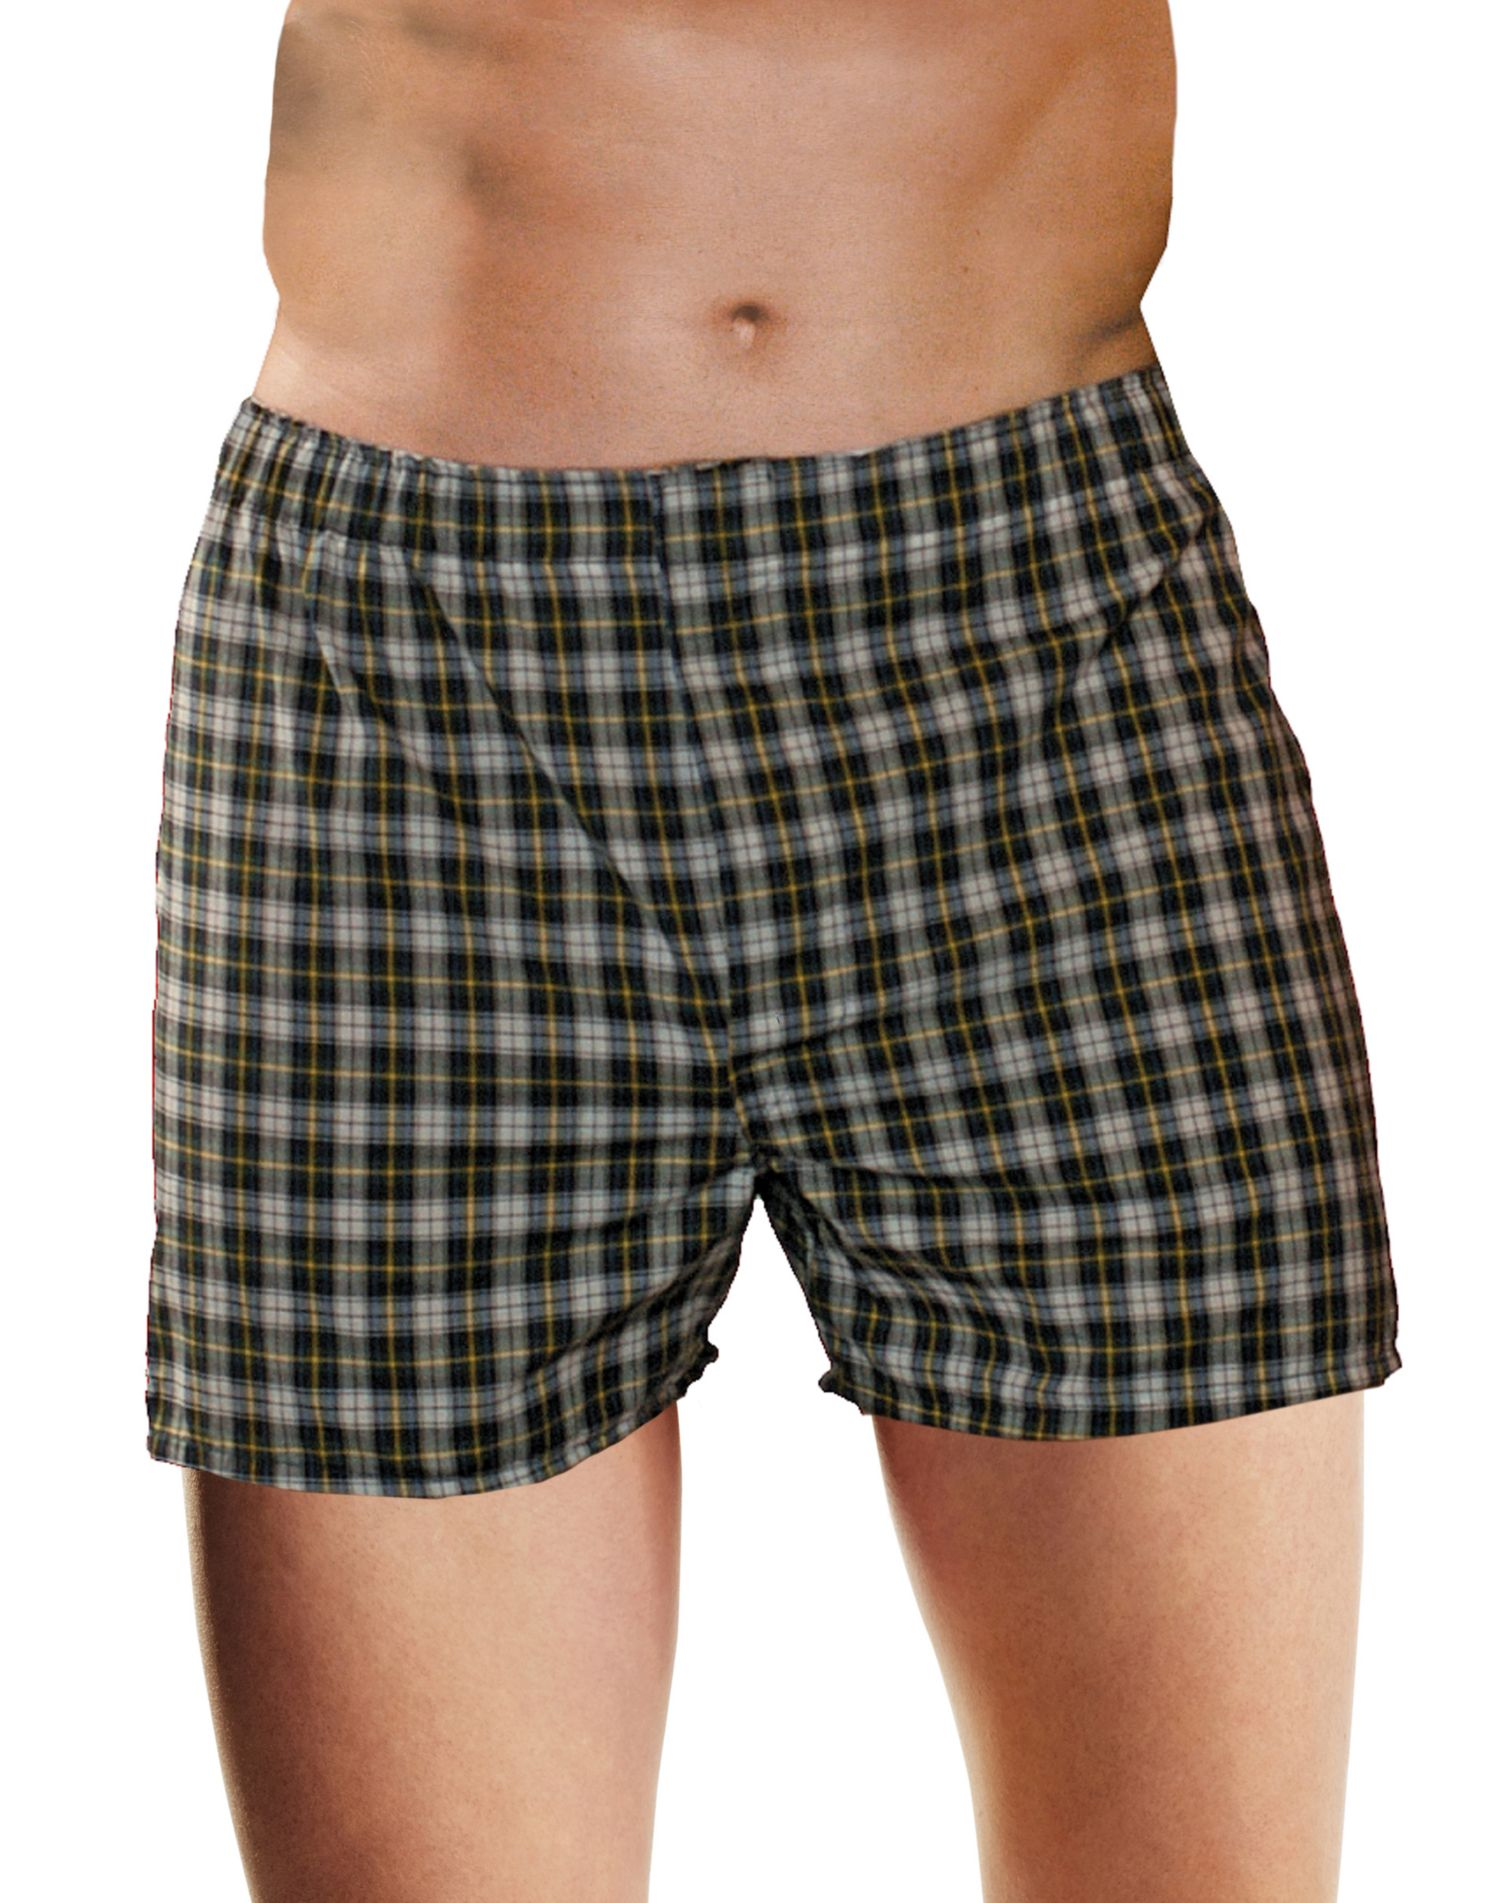 Hanes Mens Tagless Boxer Briefs With Comfort Flex ...